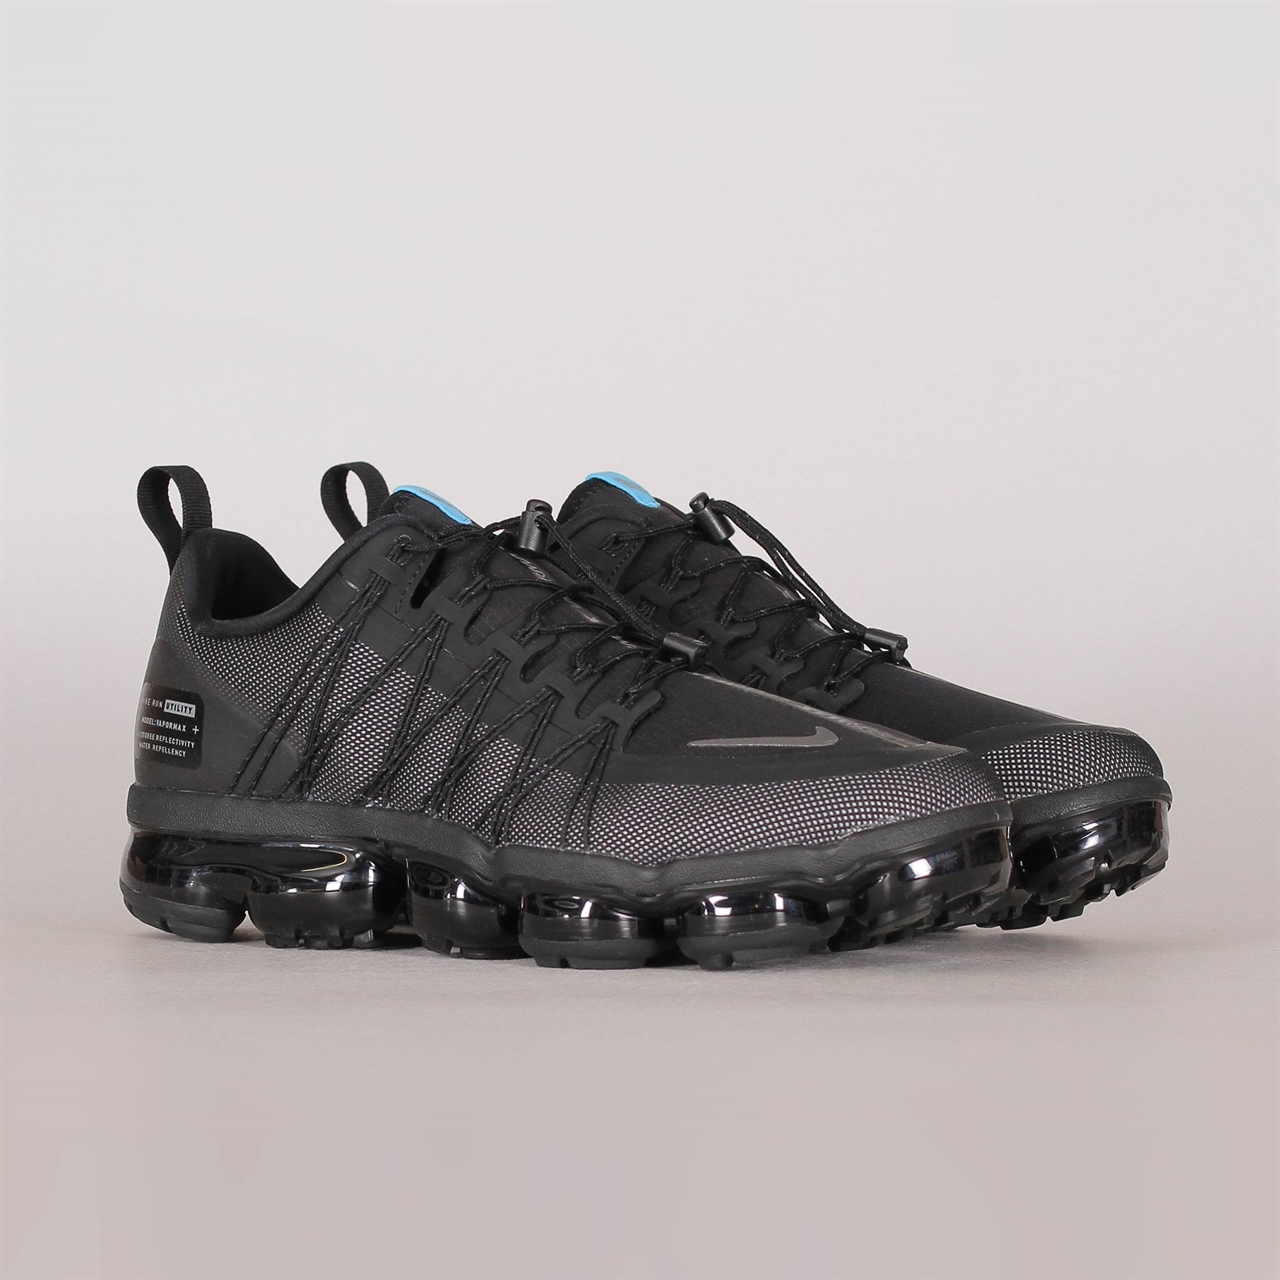 c2a75a6783b9 Shelta - Nike Air Vapormax Run Utility (BV1281-002)